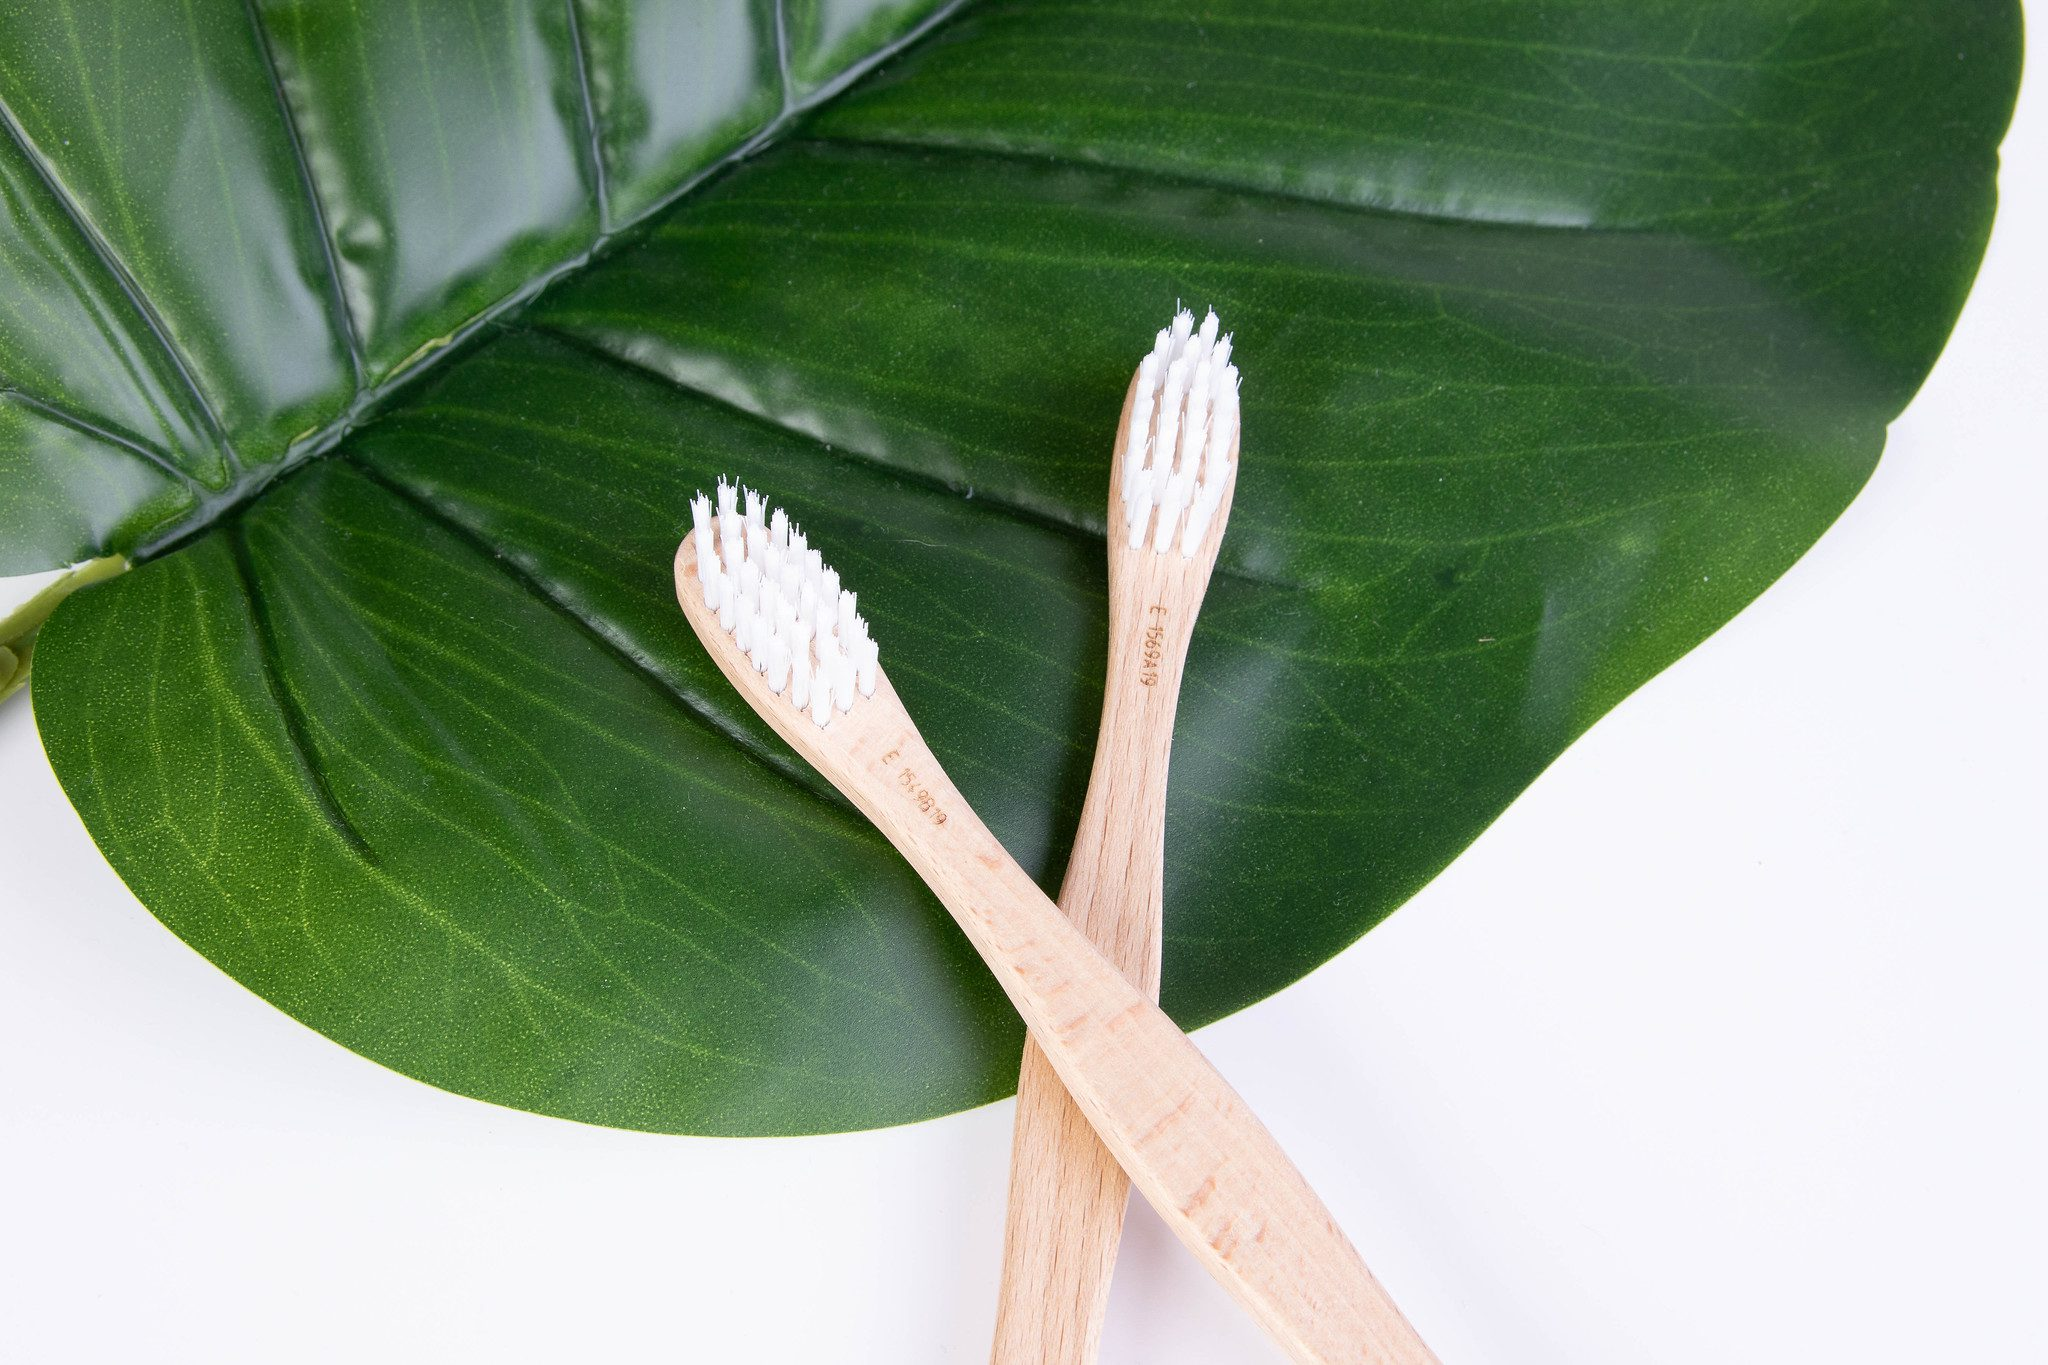 Bamboo Toothbrushes on a leaf